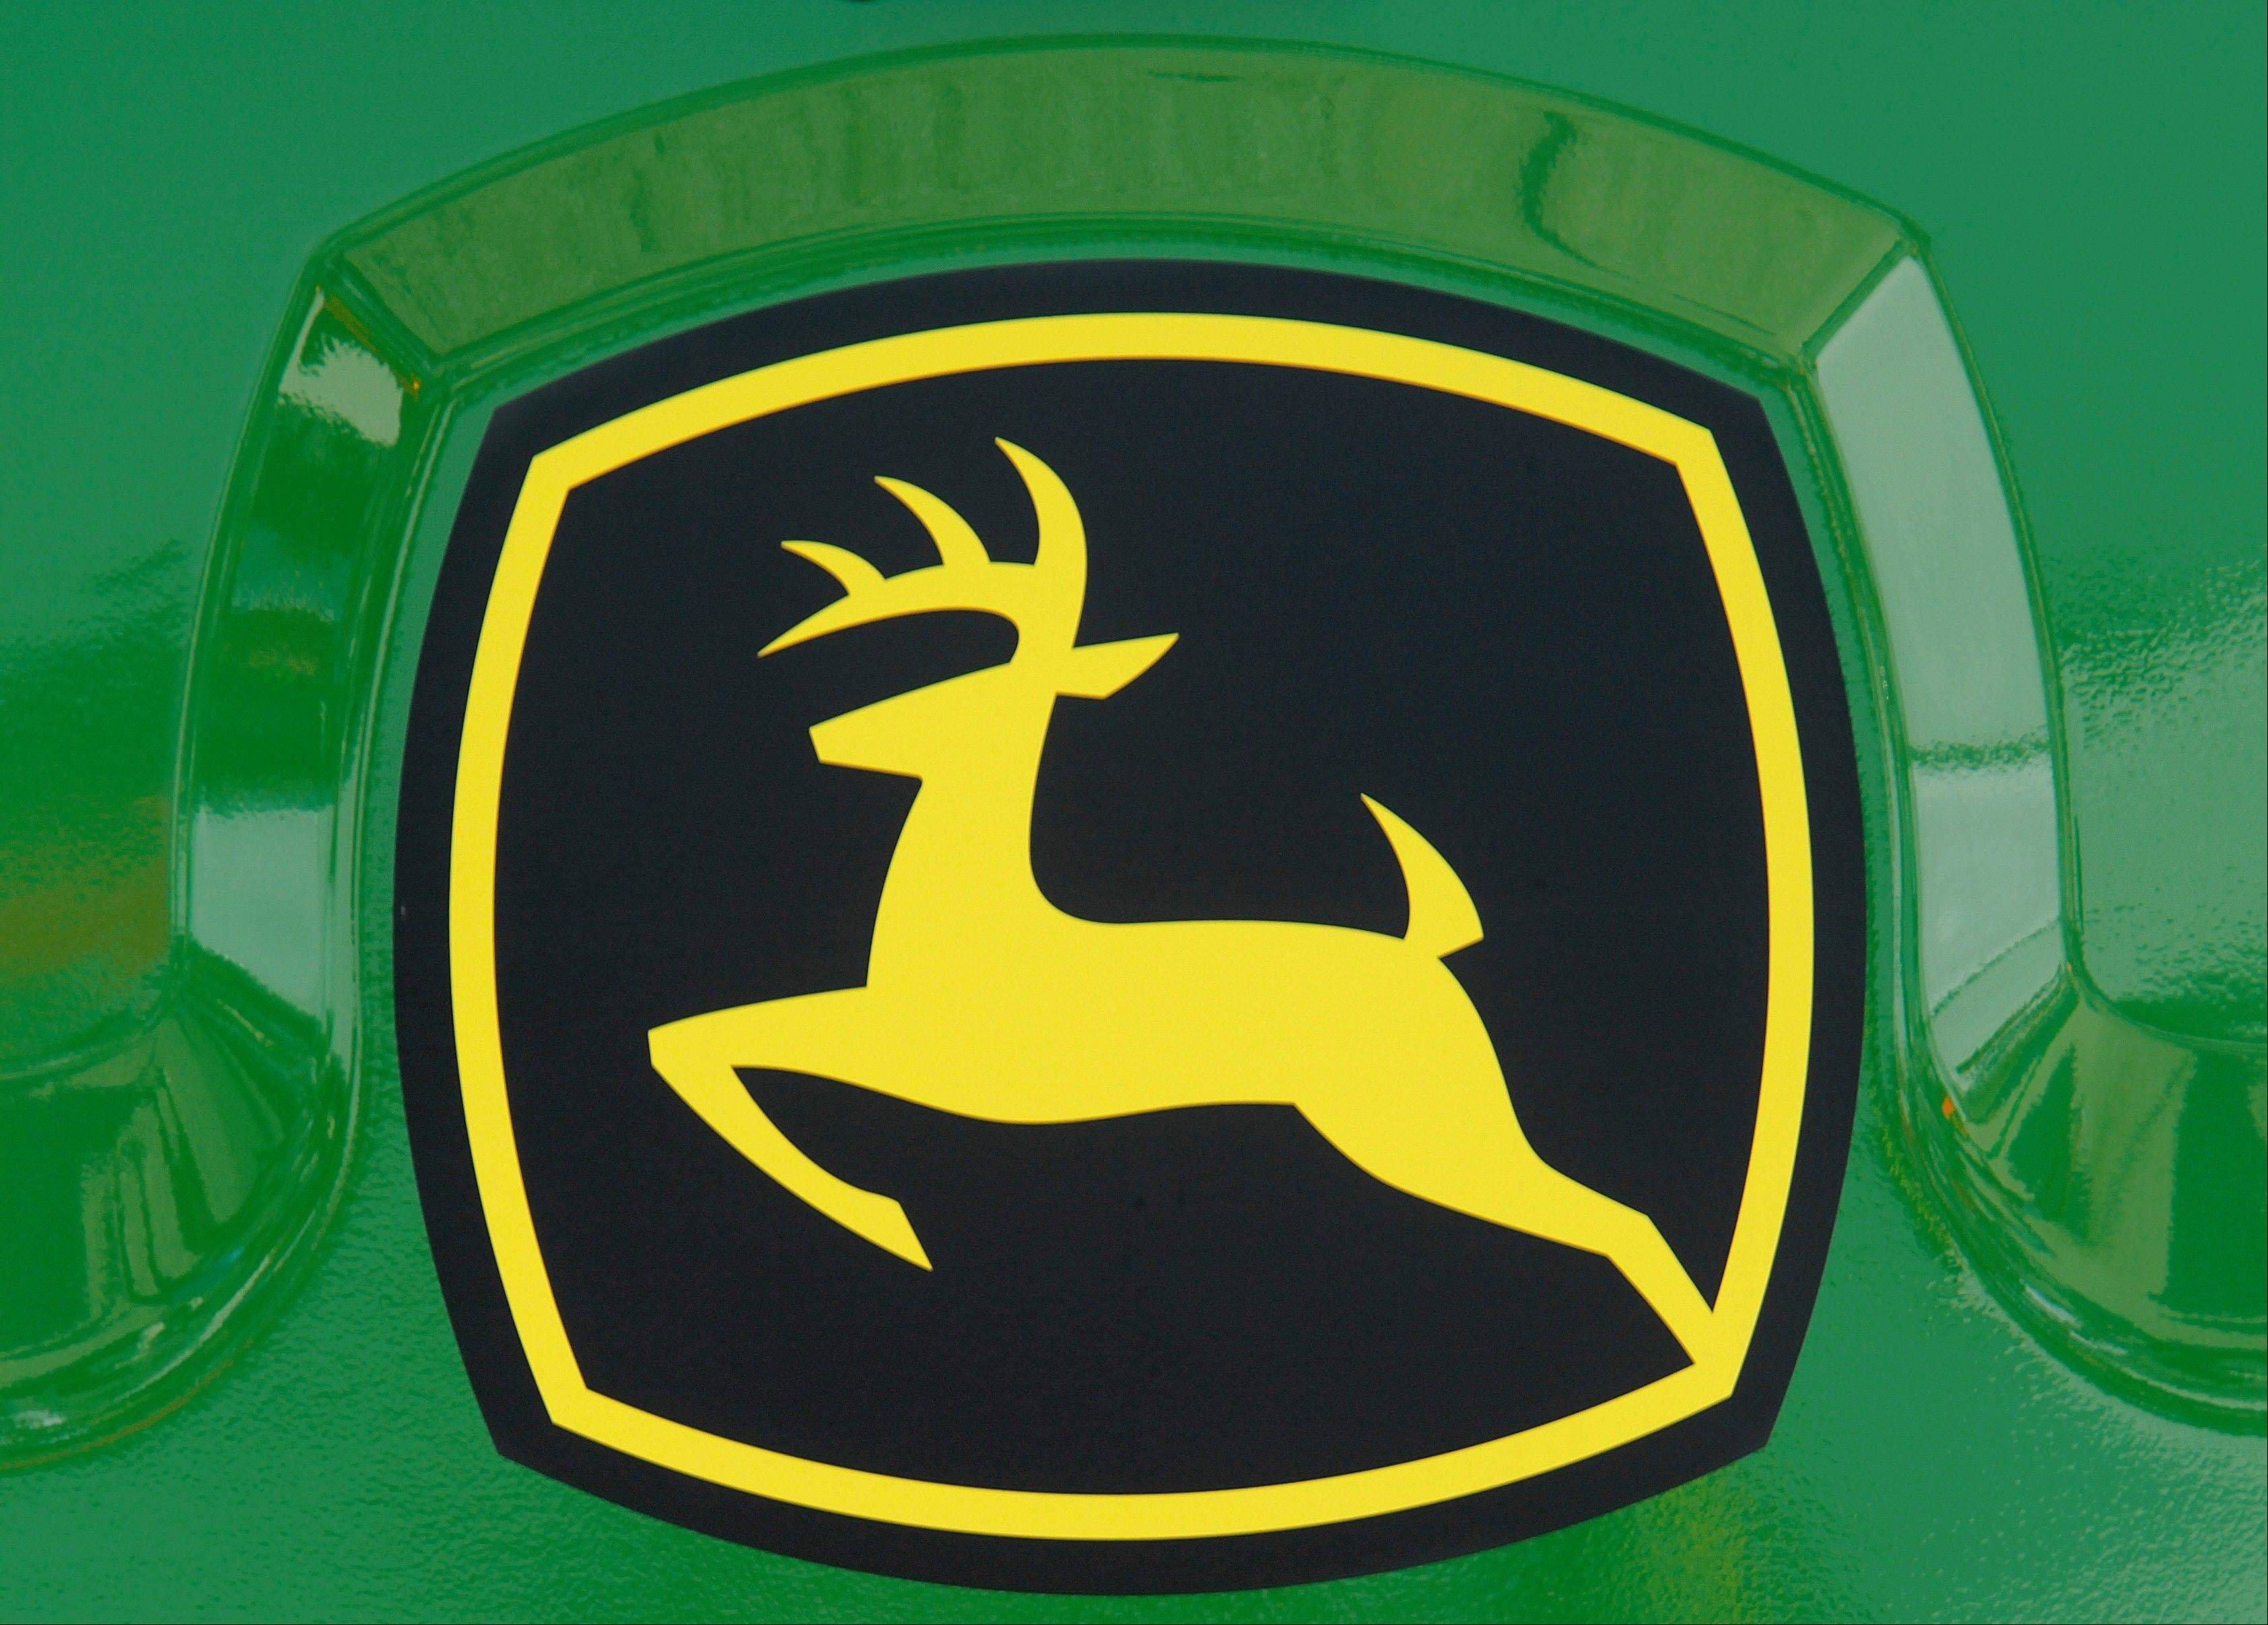 Associated Press The John Deere logo on the back of a combine at the John Deere farming equipment exhibit area during the Farm Progress Show in Decatur.